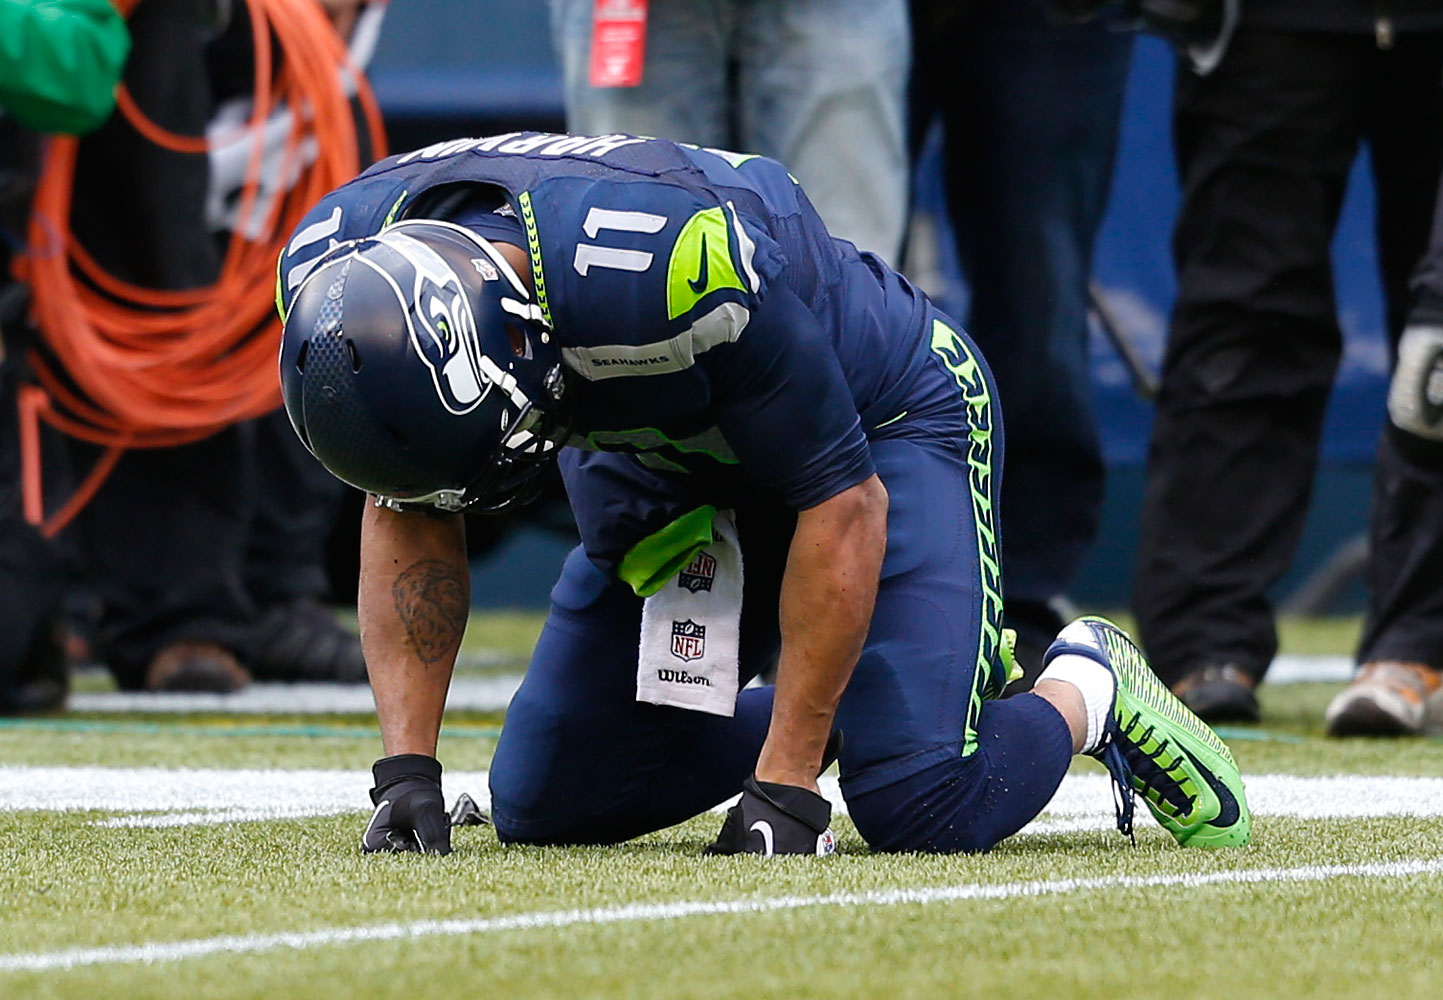 Seattle Seahawks wide receiver Percy Harvin (11) reacts after taking a big hit during an NFL Divisional Playoff game against the New Orleans Saints on Jan. 11, 2014.